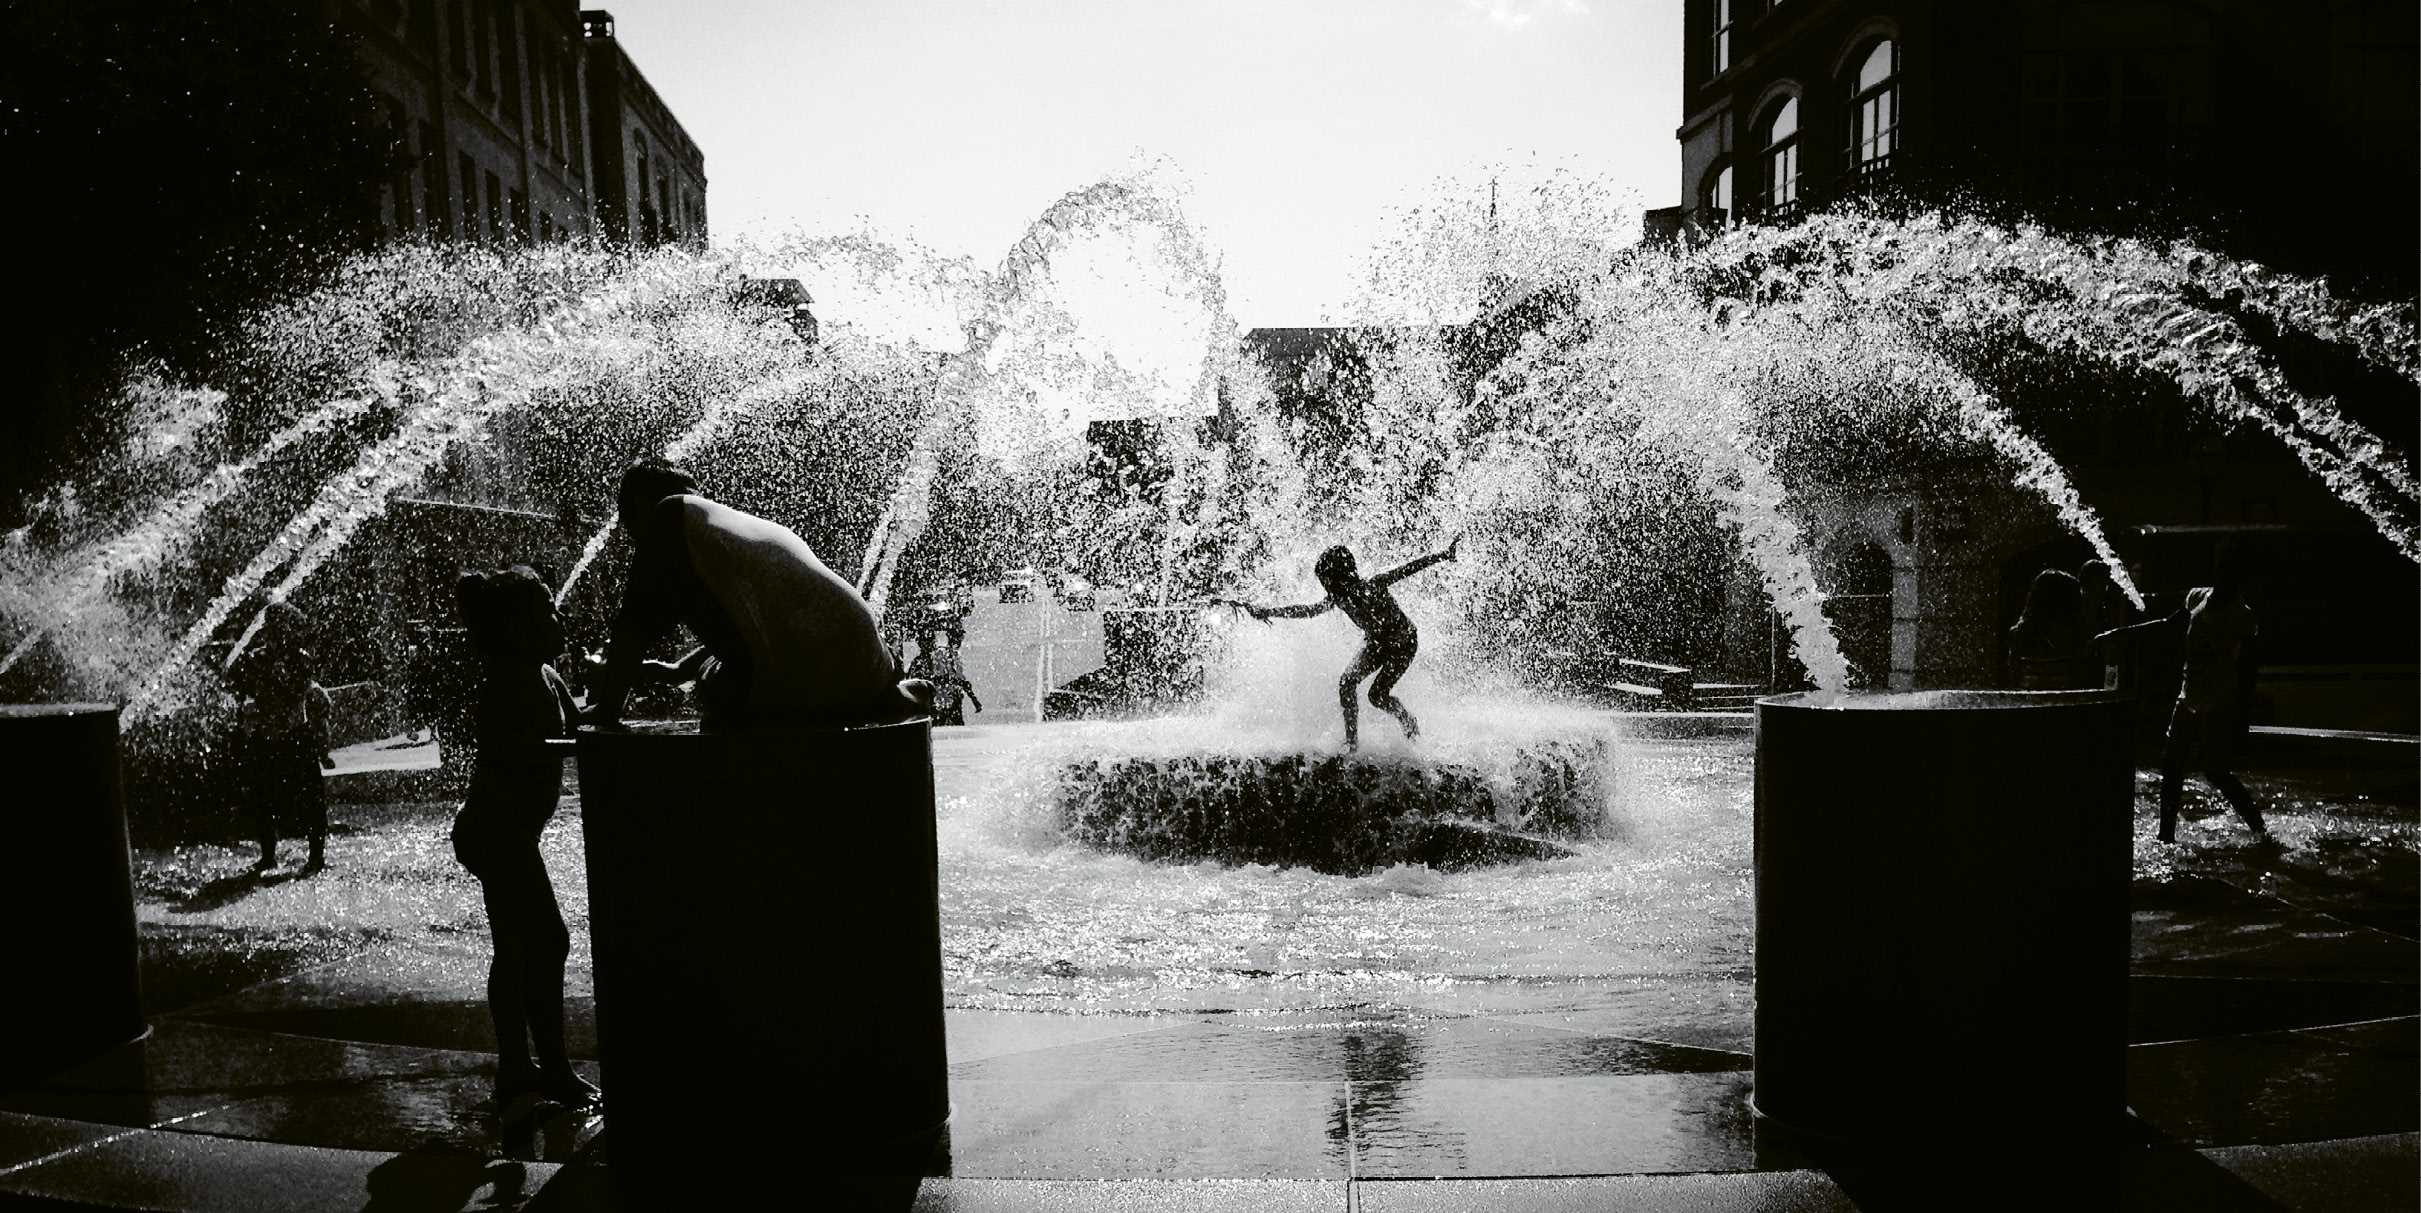 Hot fun in the City by Peggy Archambault  {Amateur category} - A steamy day at  Waterfront Park